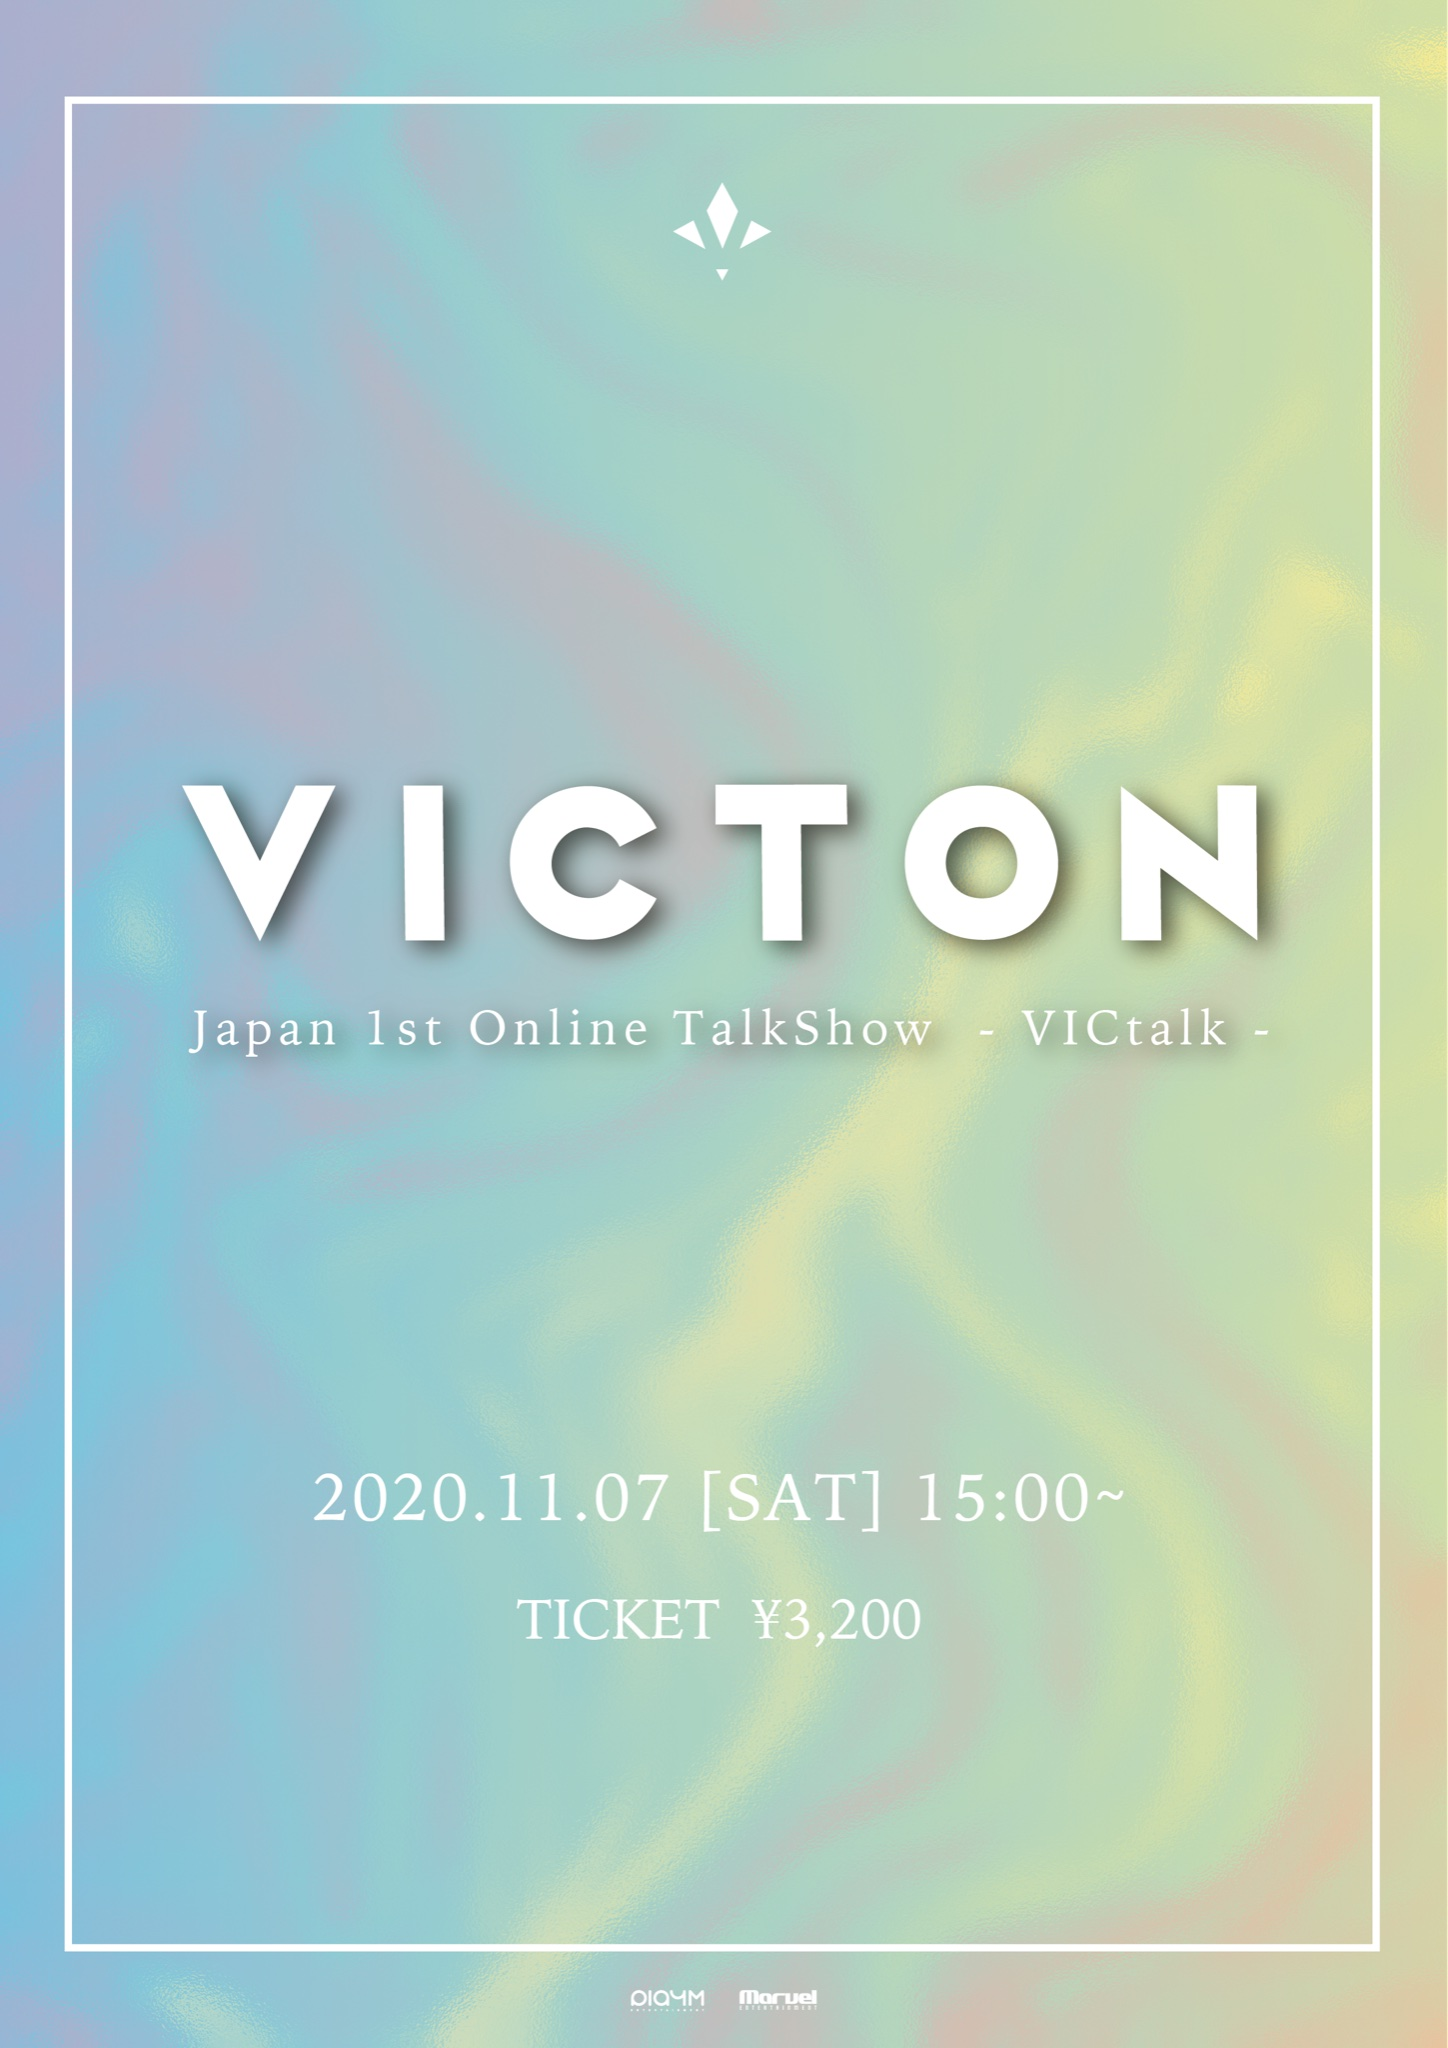 VICTON Japan 1st Online TalkShow - VICtalk-